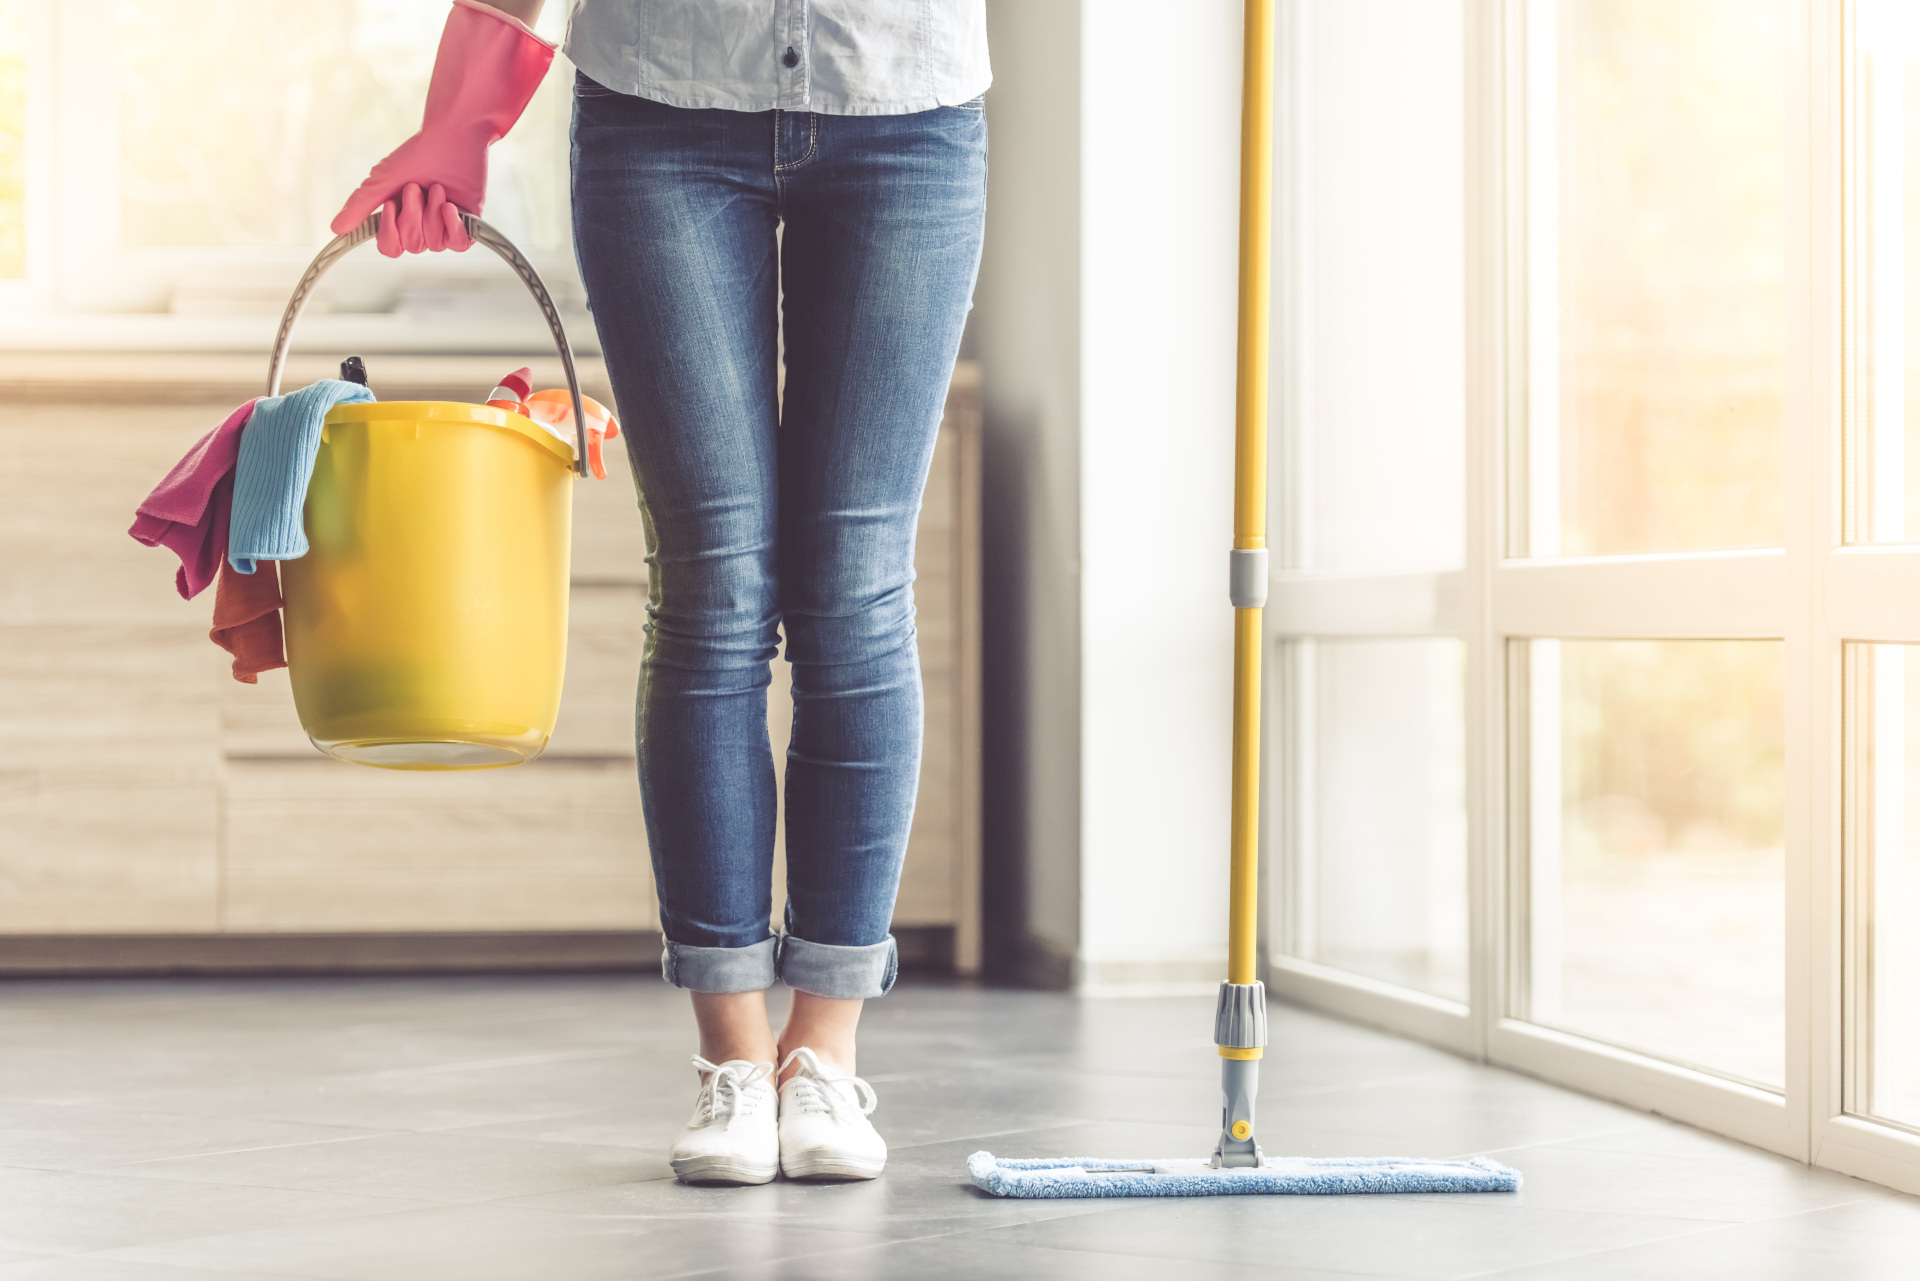 Lady ready with all tools to clean the home